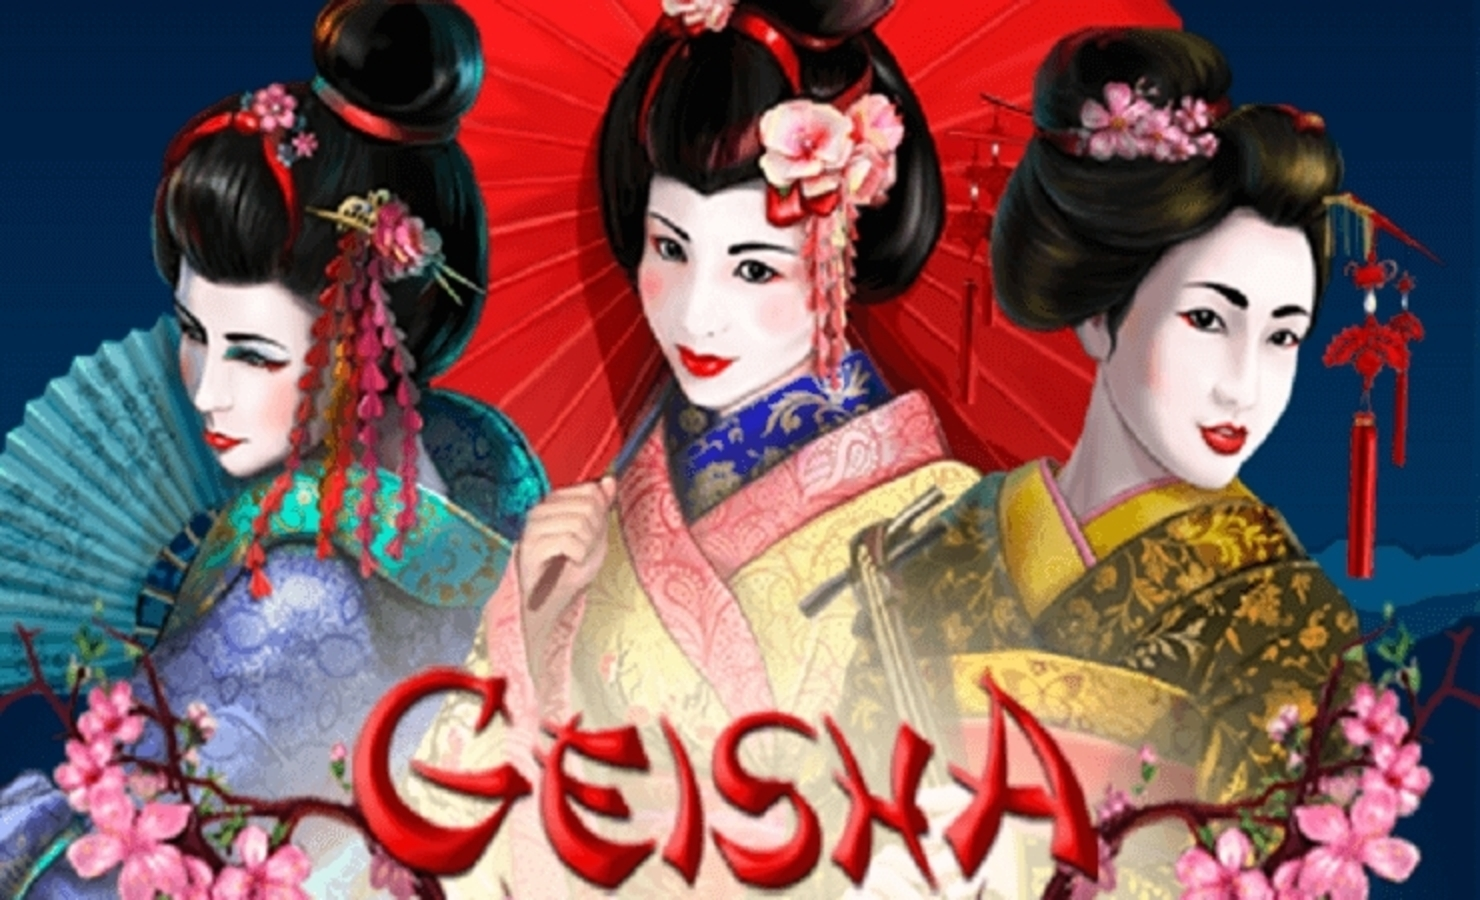 Geisha Online Slot Demo Game by Endorphina